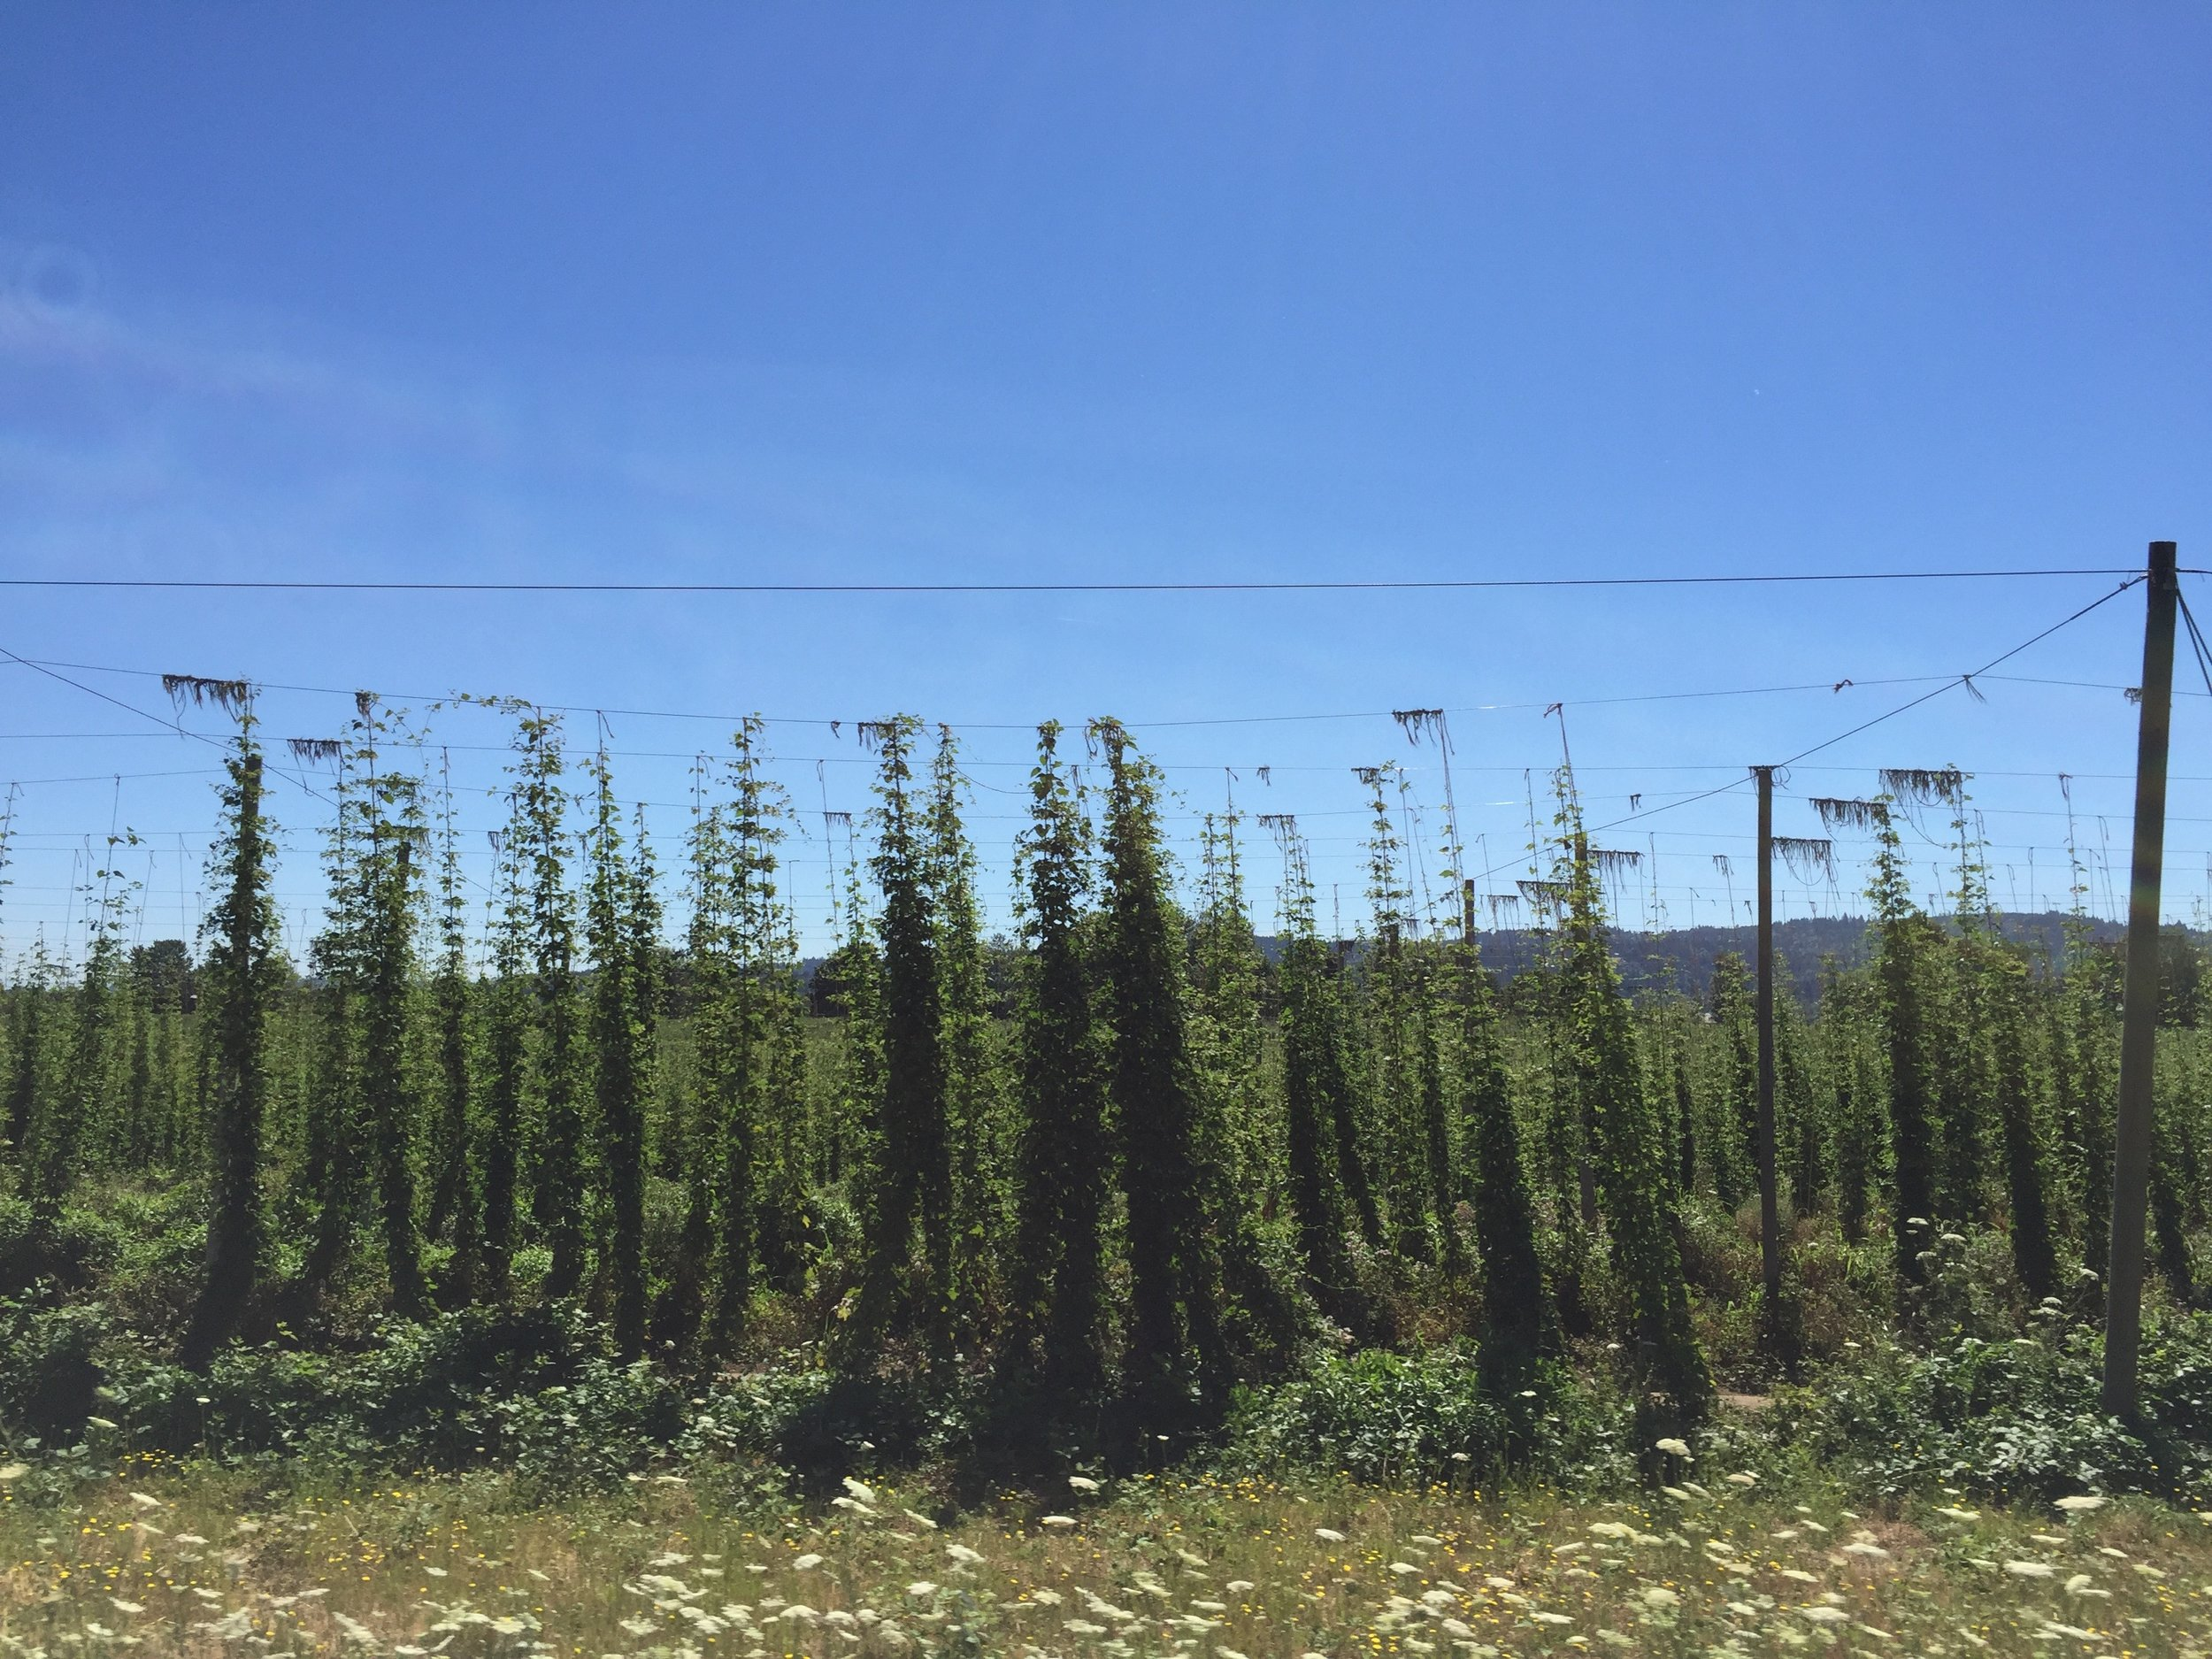 Hops growing by the side of the road